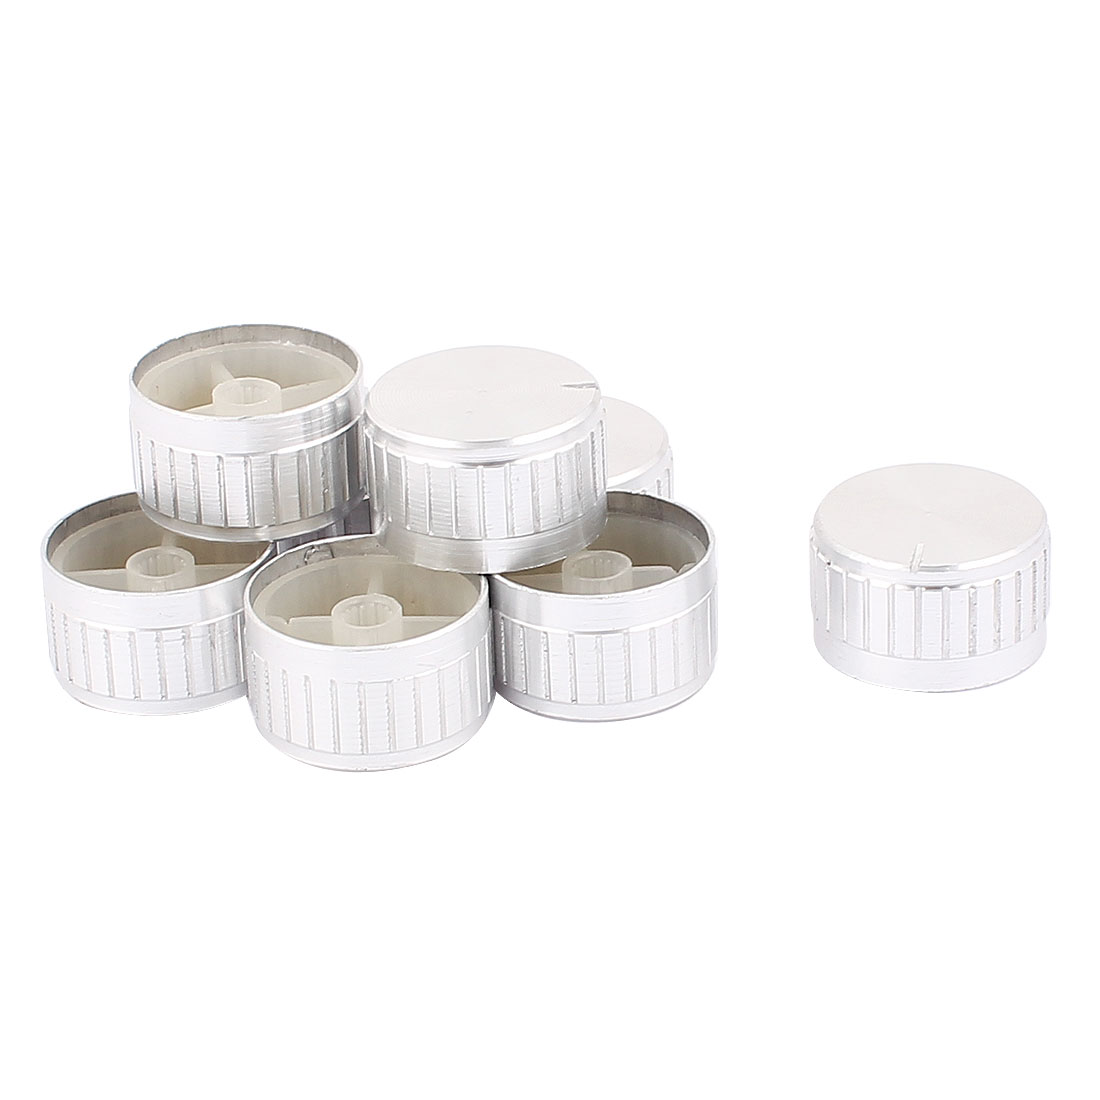 8 Pcs 30mm x 6mm Aluminium Alloy Potentiometer Control Switch Volume Cap Knurled Button Silver Tone